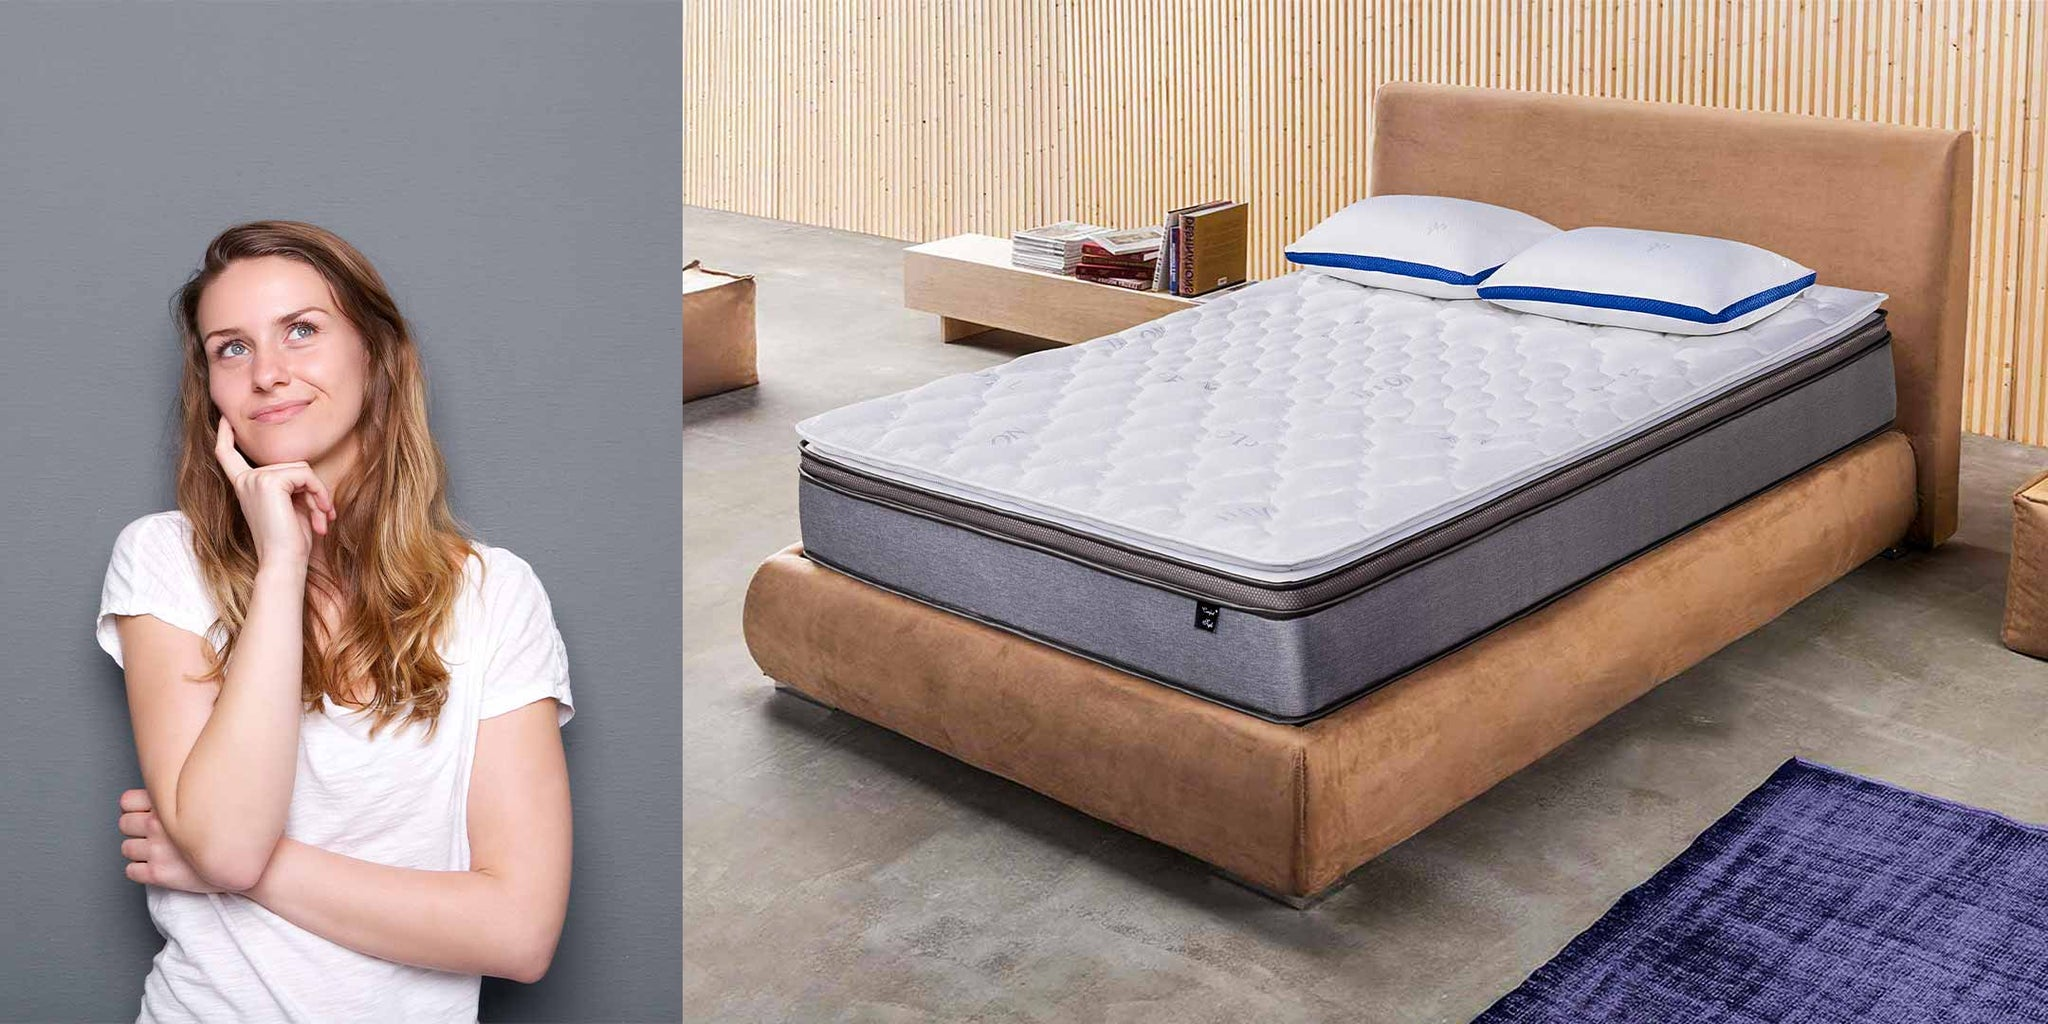 Buying Mattress with Preconceived Ideas